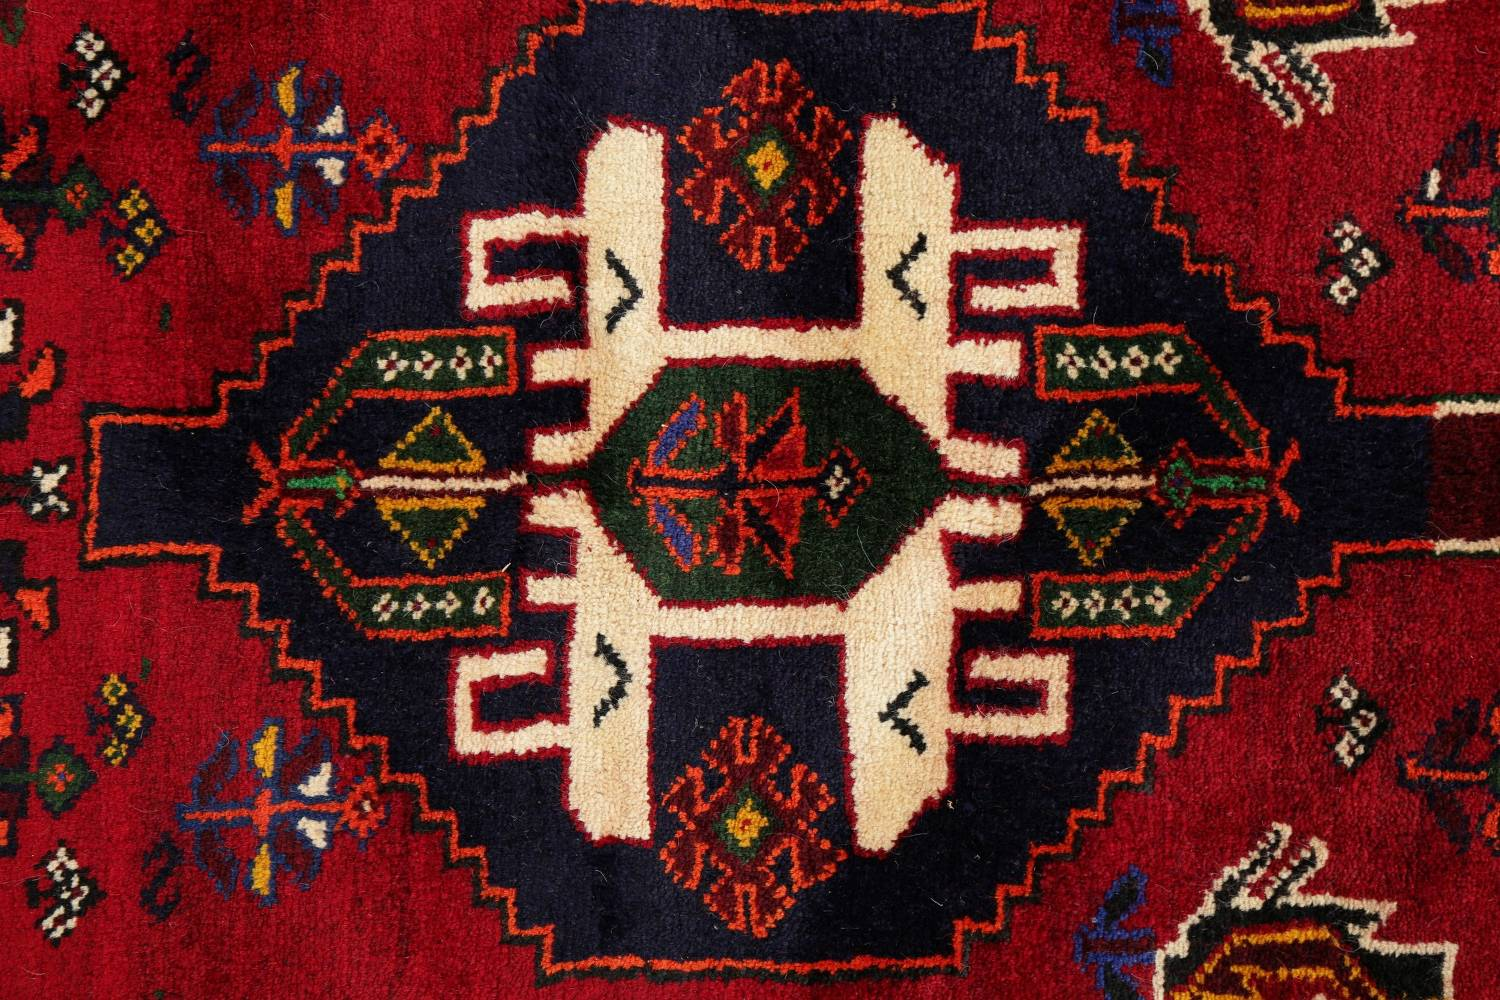 Tribal Abadeh Red Persian Wool Rug 5x8 image 9